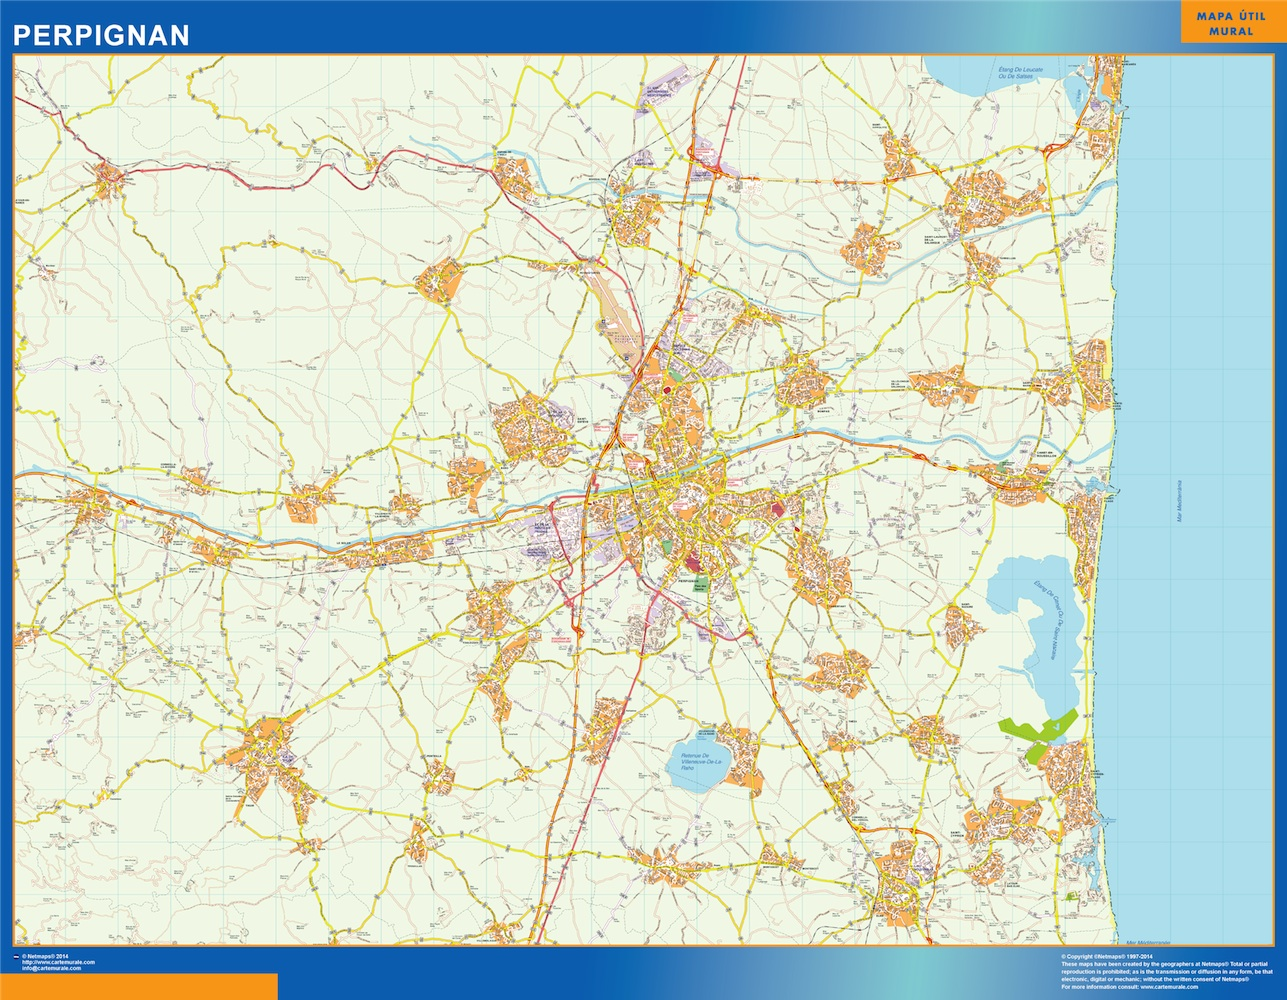 Perpignan Rail Maps and Stations from European Rail Guide |Perpignan France Map